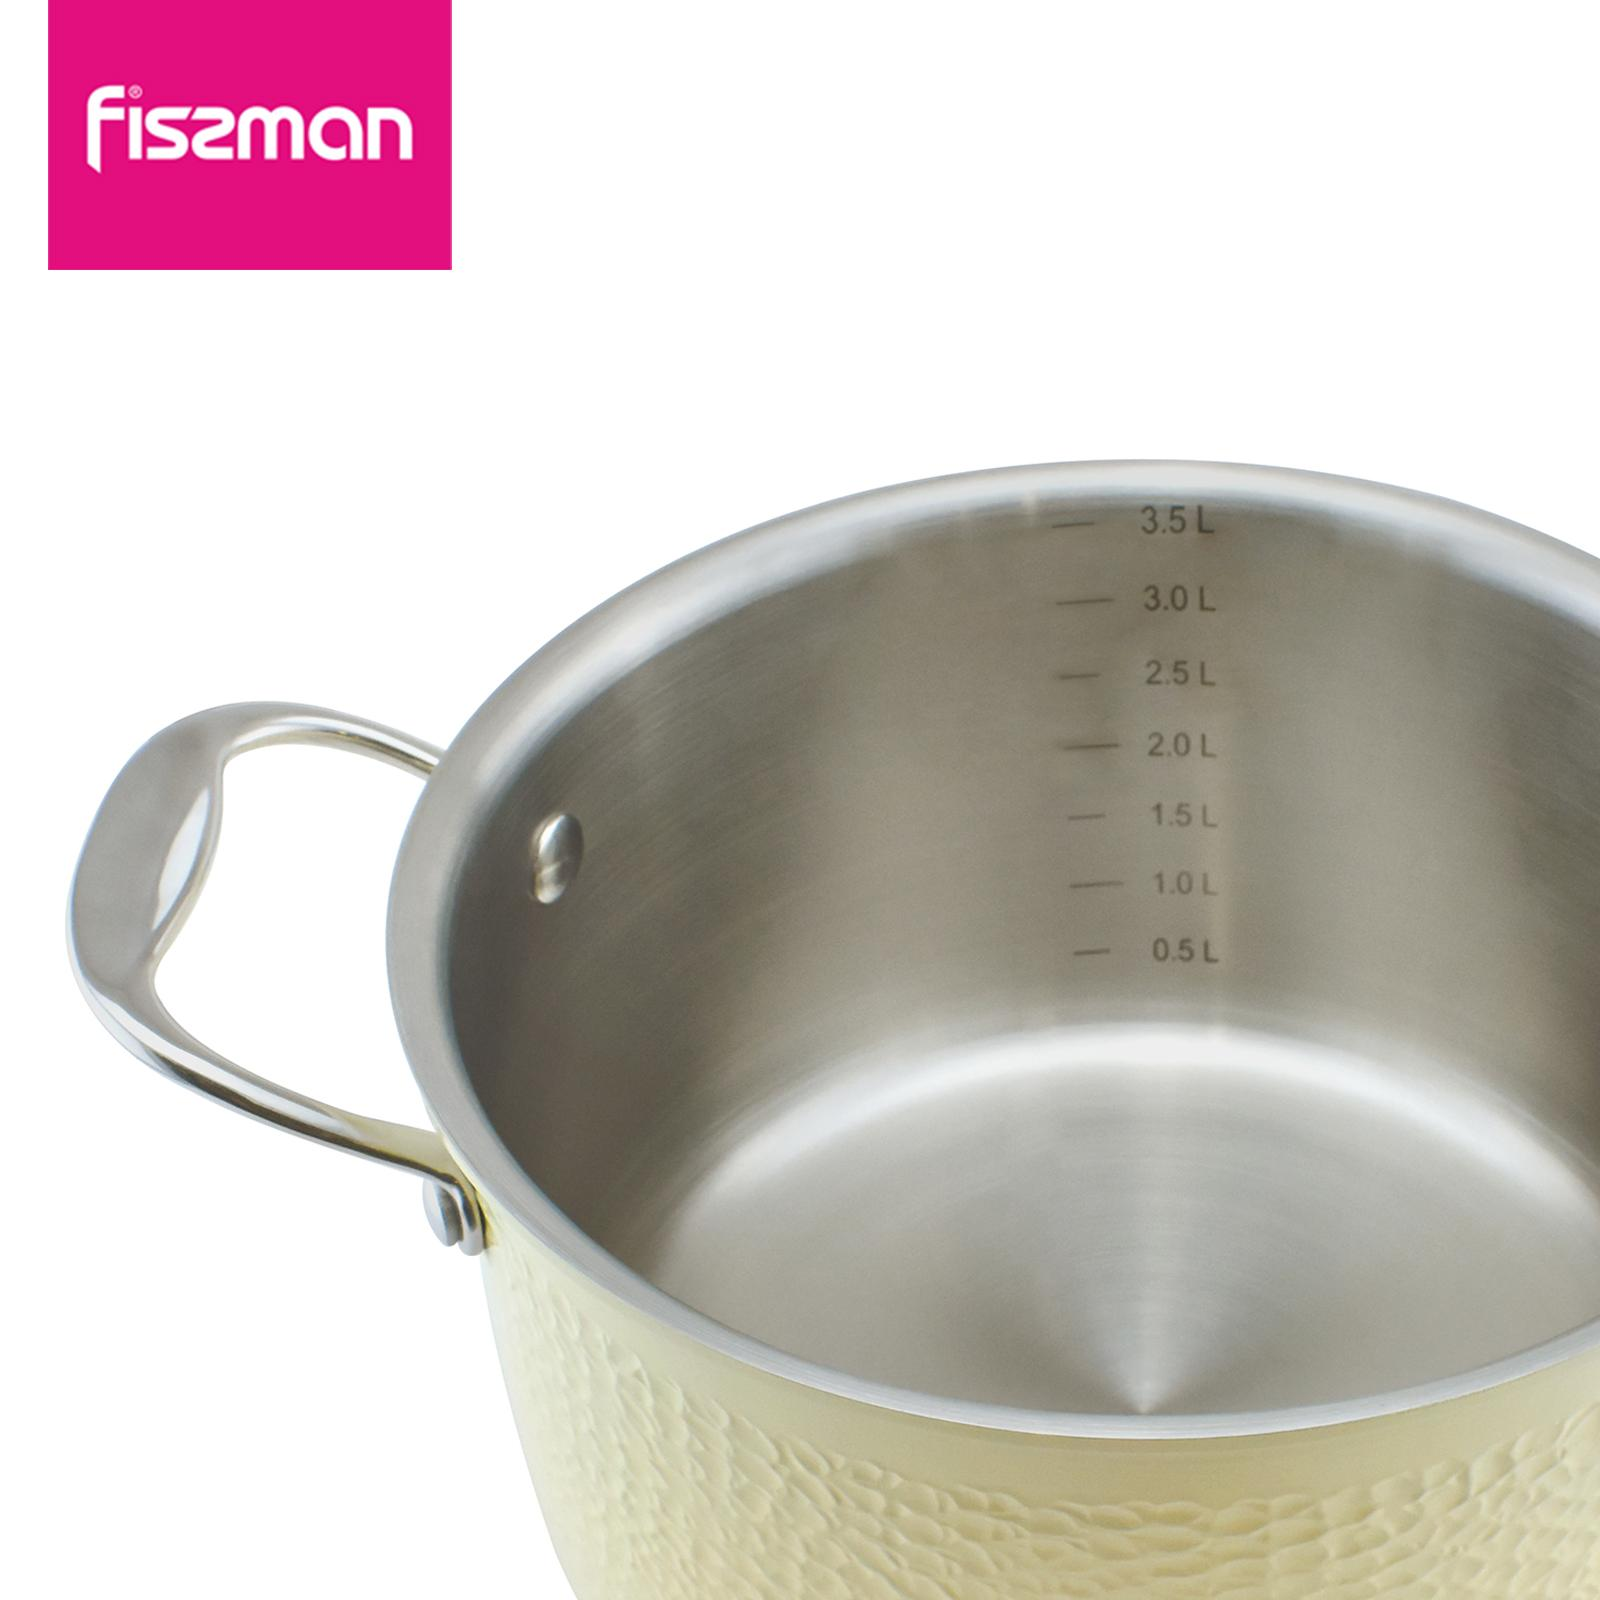 FISSMAN 2018 hot sale 2ply Stainless Steel 20cm casserole with lid   5